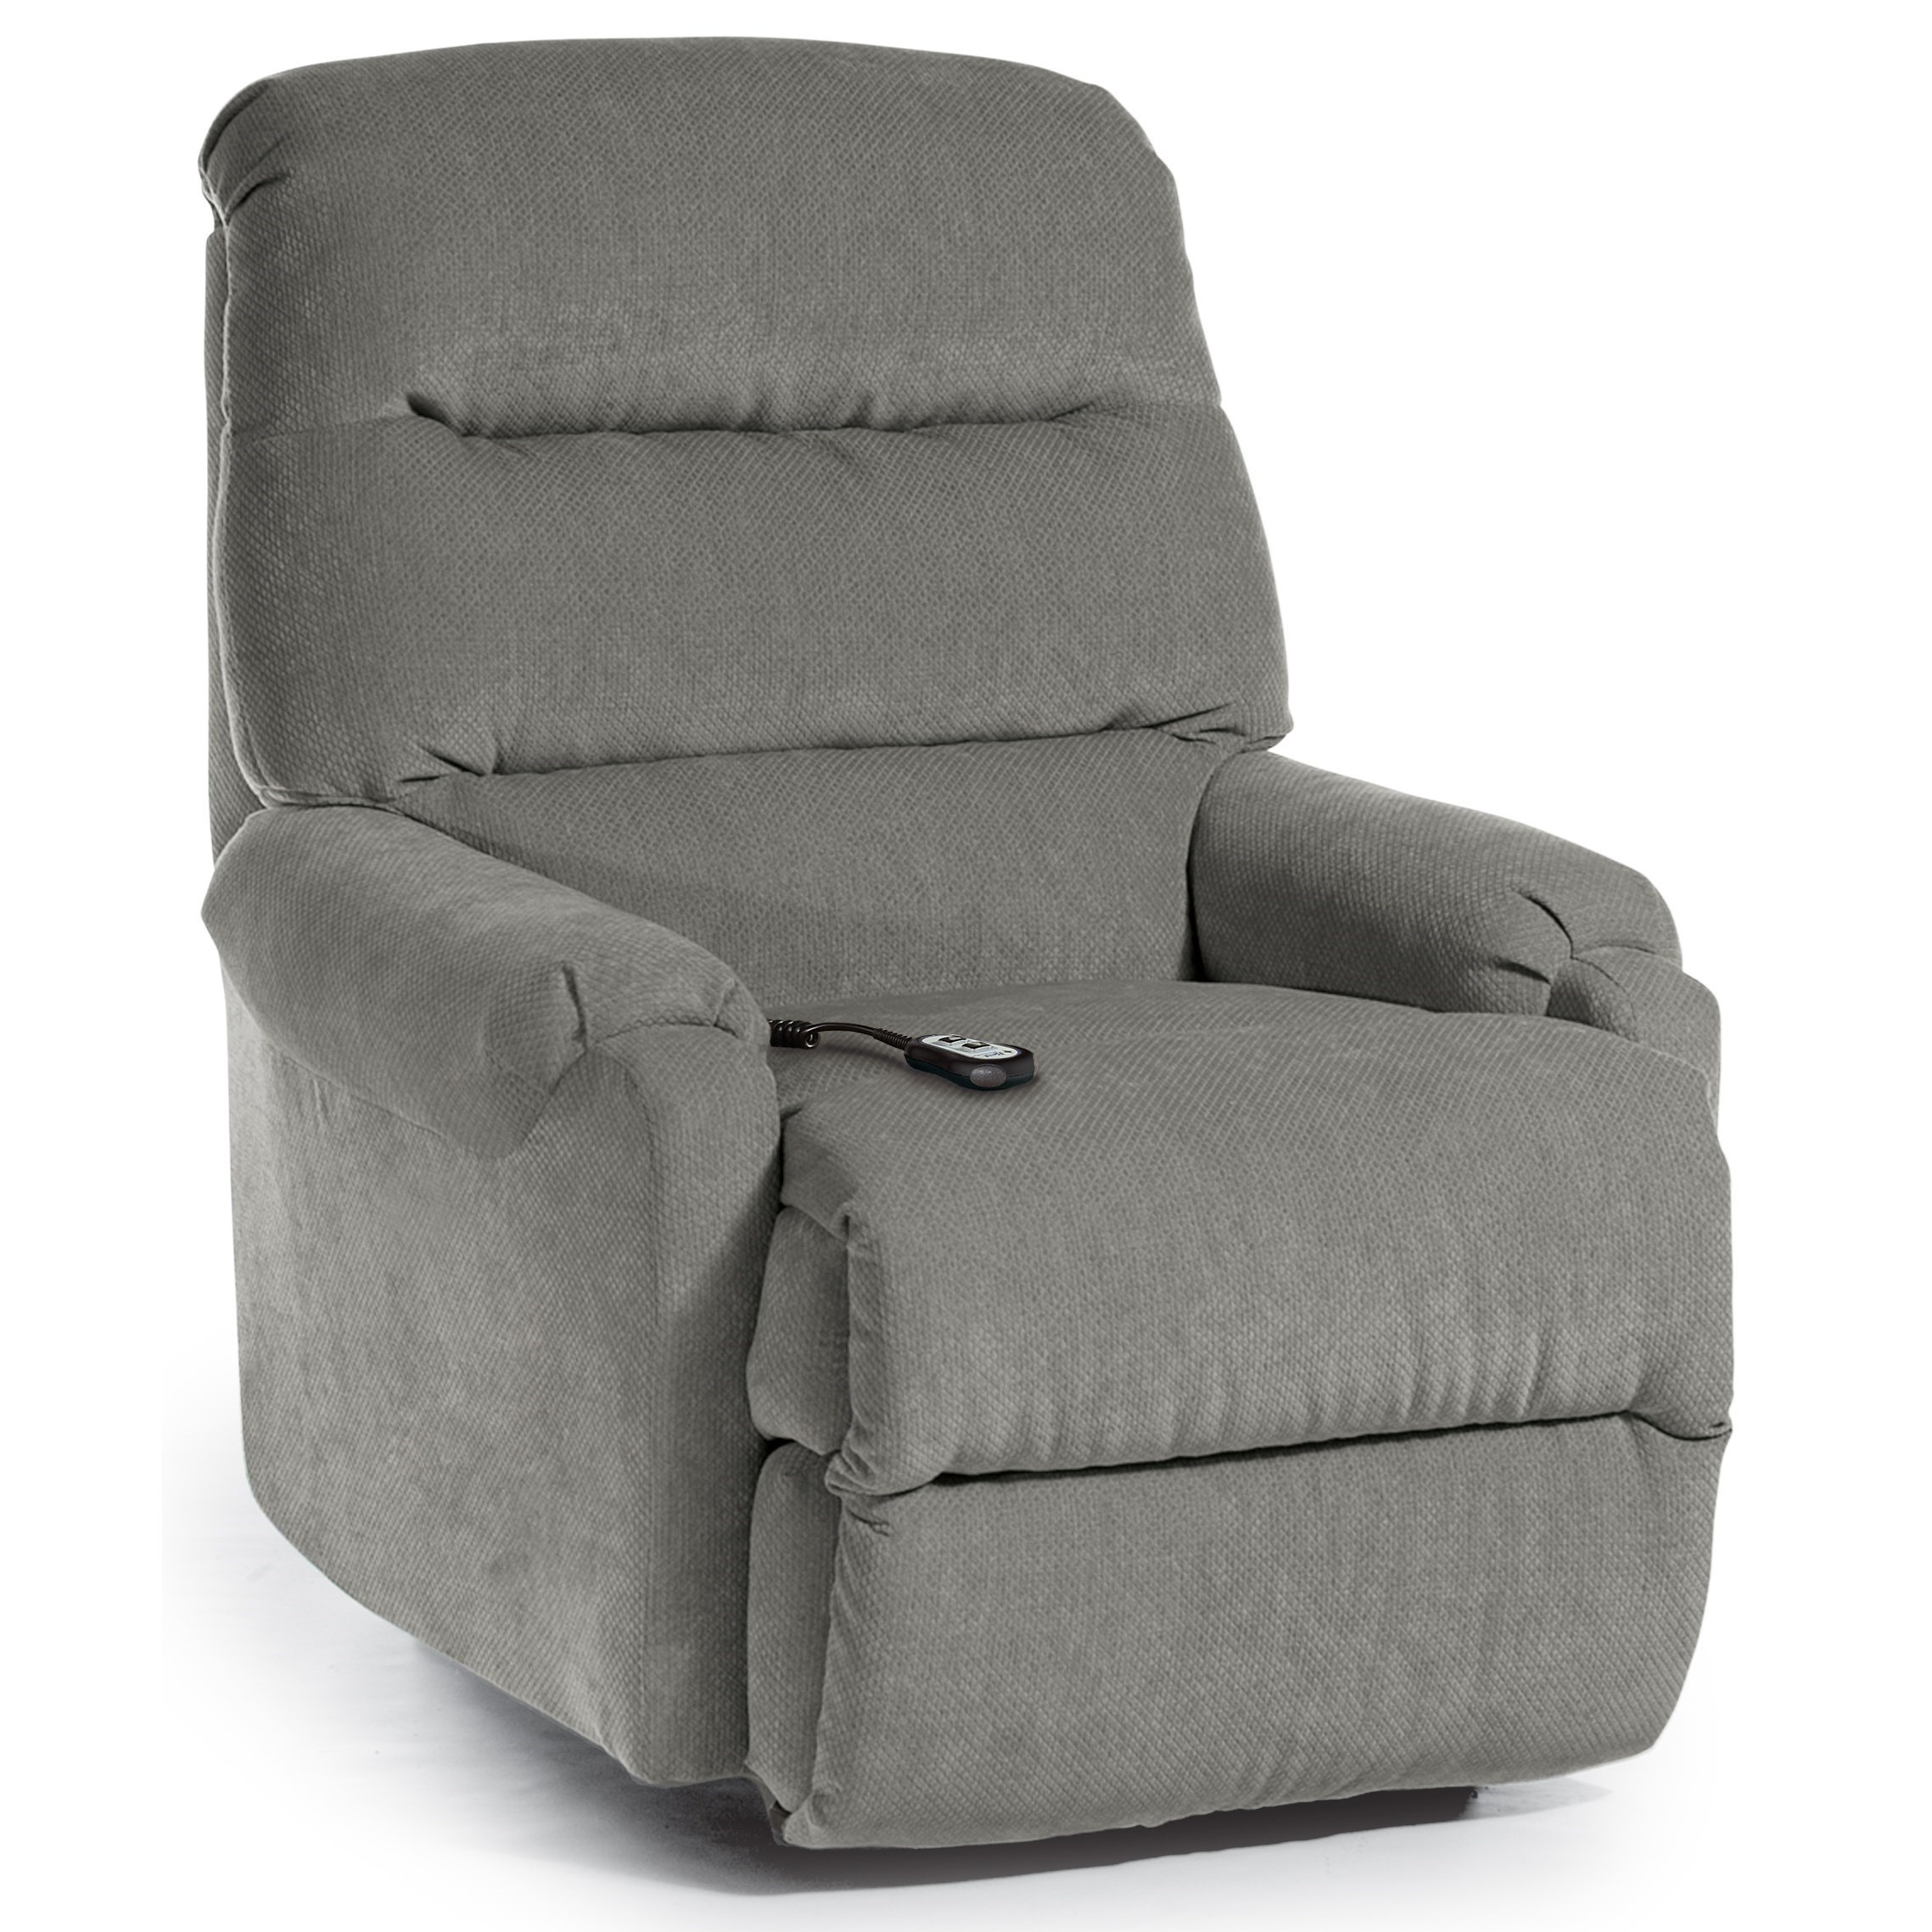 Petite Recliners Sedgefield Power Lift Recliner by Best Home Furnishings at Baer's Furniture